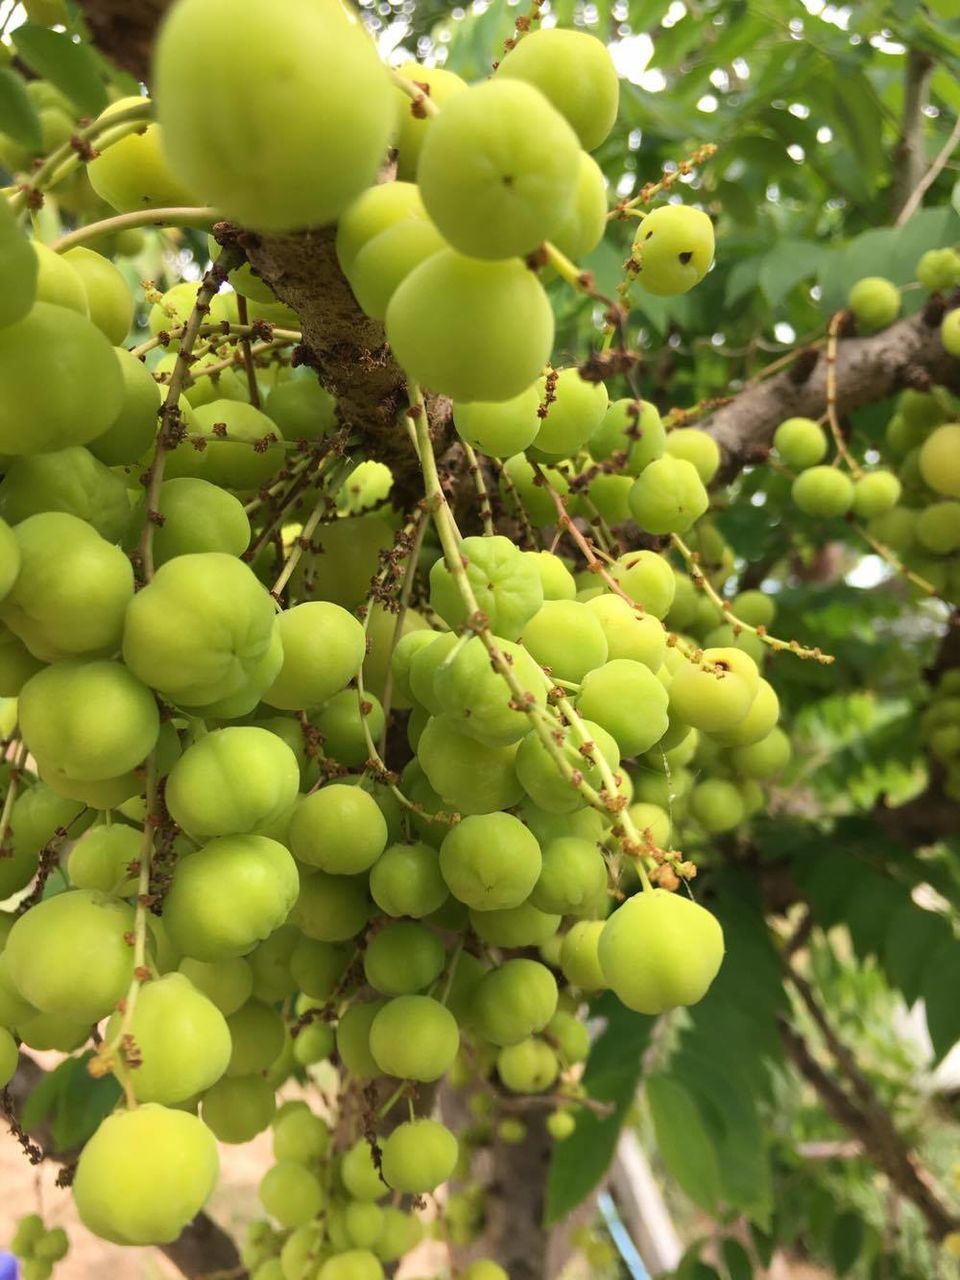 fruit, food and drink, growth, green color, food, bunch, grape, day, growing, unripe, outdoors, no people, tree, nature, freshness, healthy eating, agriculture, hanging, beauty in nature, close-up